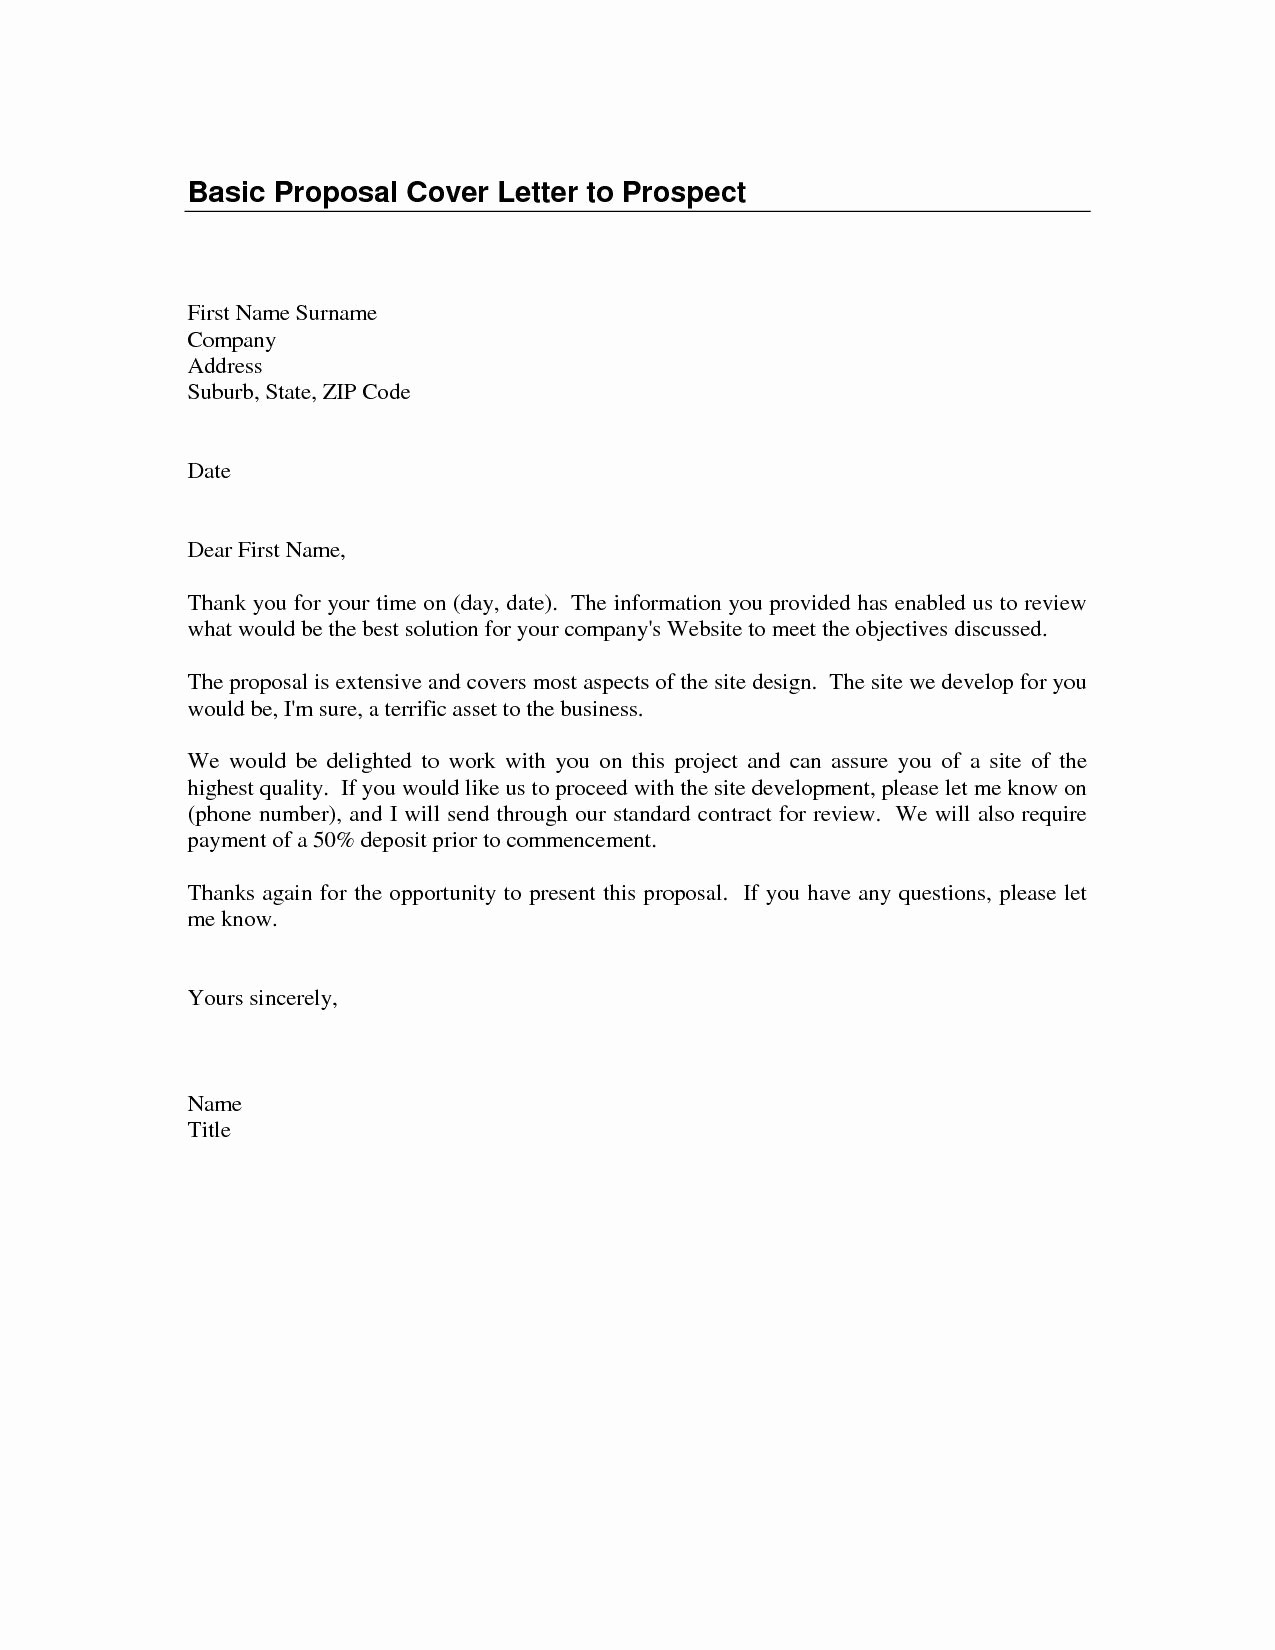 Example Of Basic Cover Letter Luxury Quick Cover Letter Template